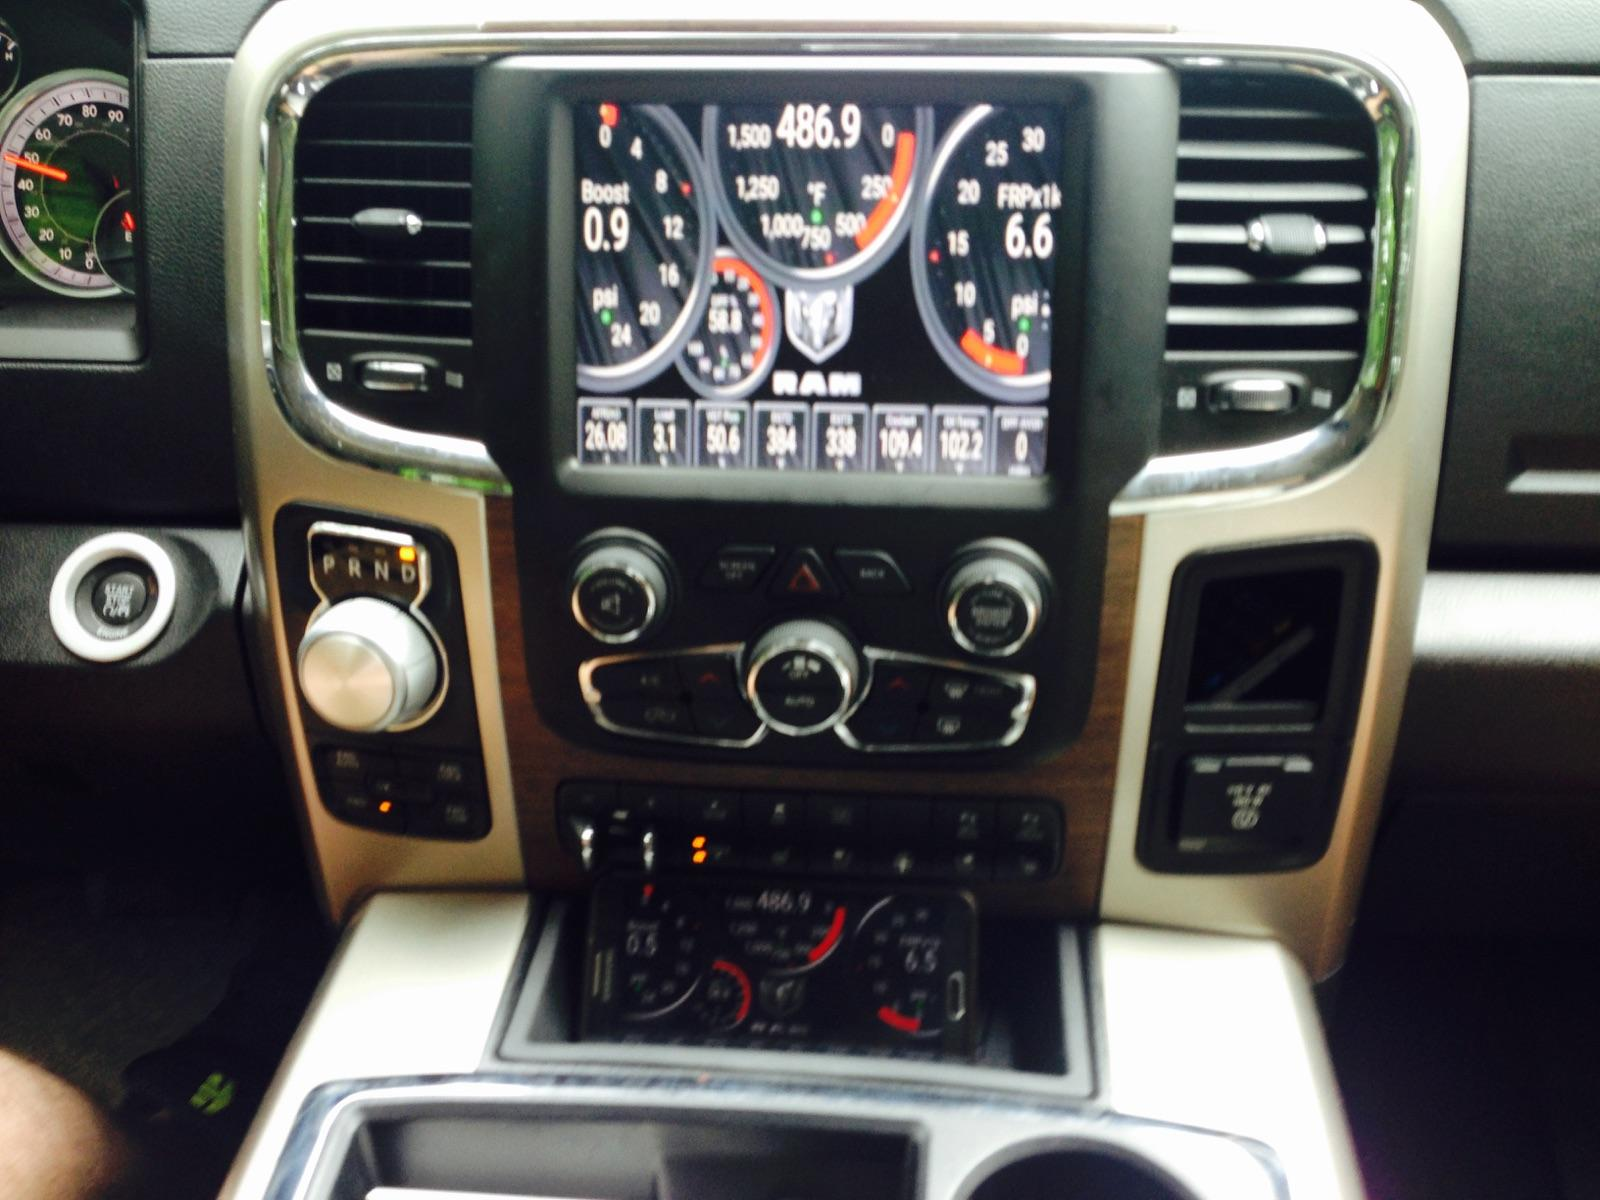 Dodge Ram 1500 Ecodiesel >> Lockpick Air v2 streaming torque from phone to 8.4 display